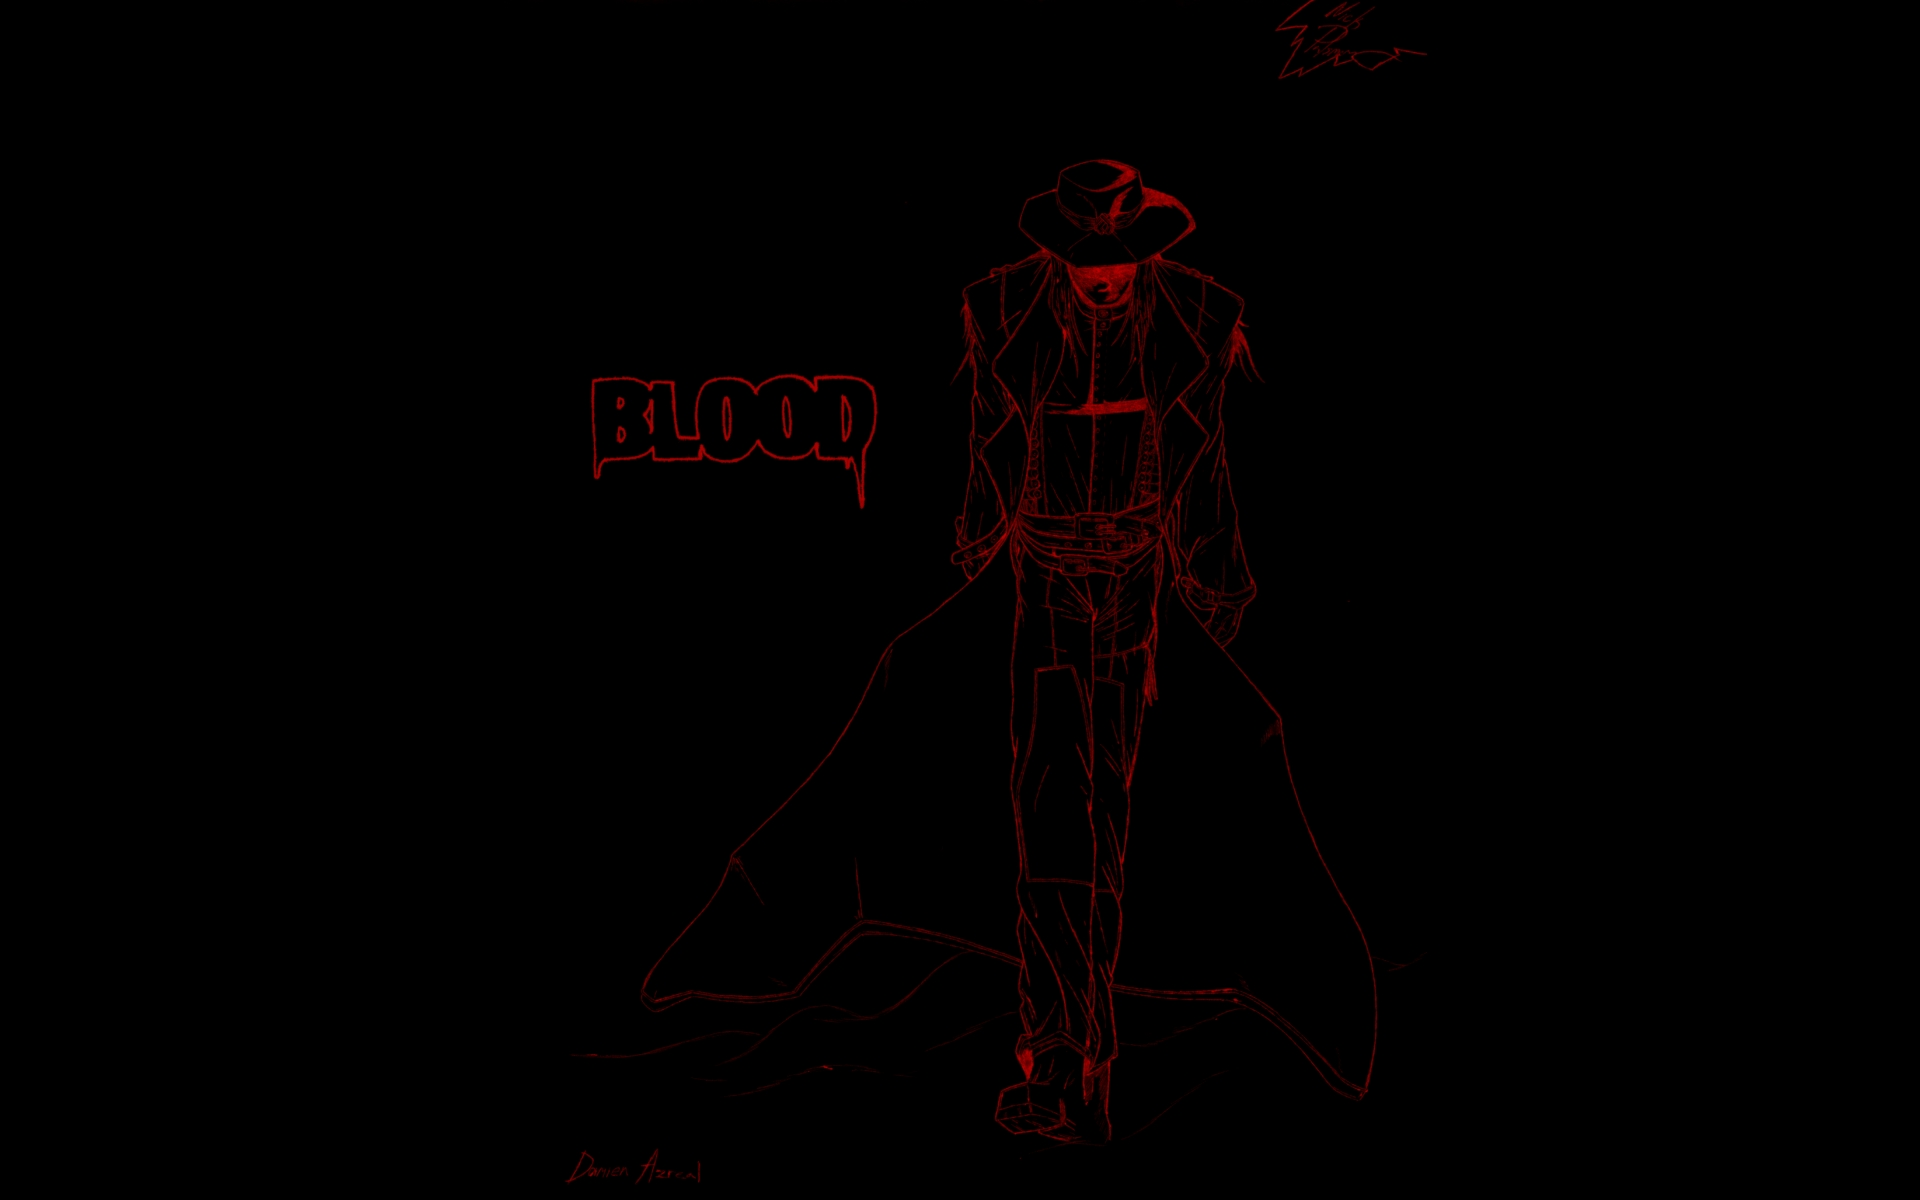 Dark Blood Wallpaper Images Of Blood Wallpapers 15 Dark Calto